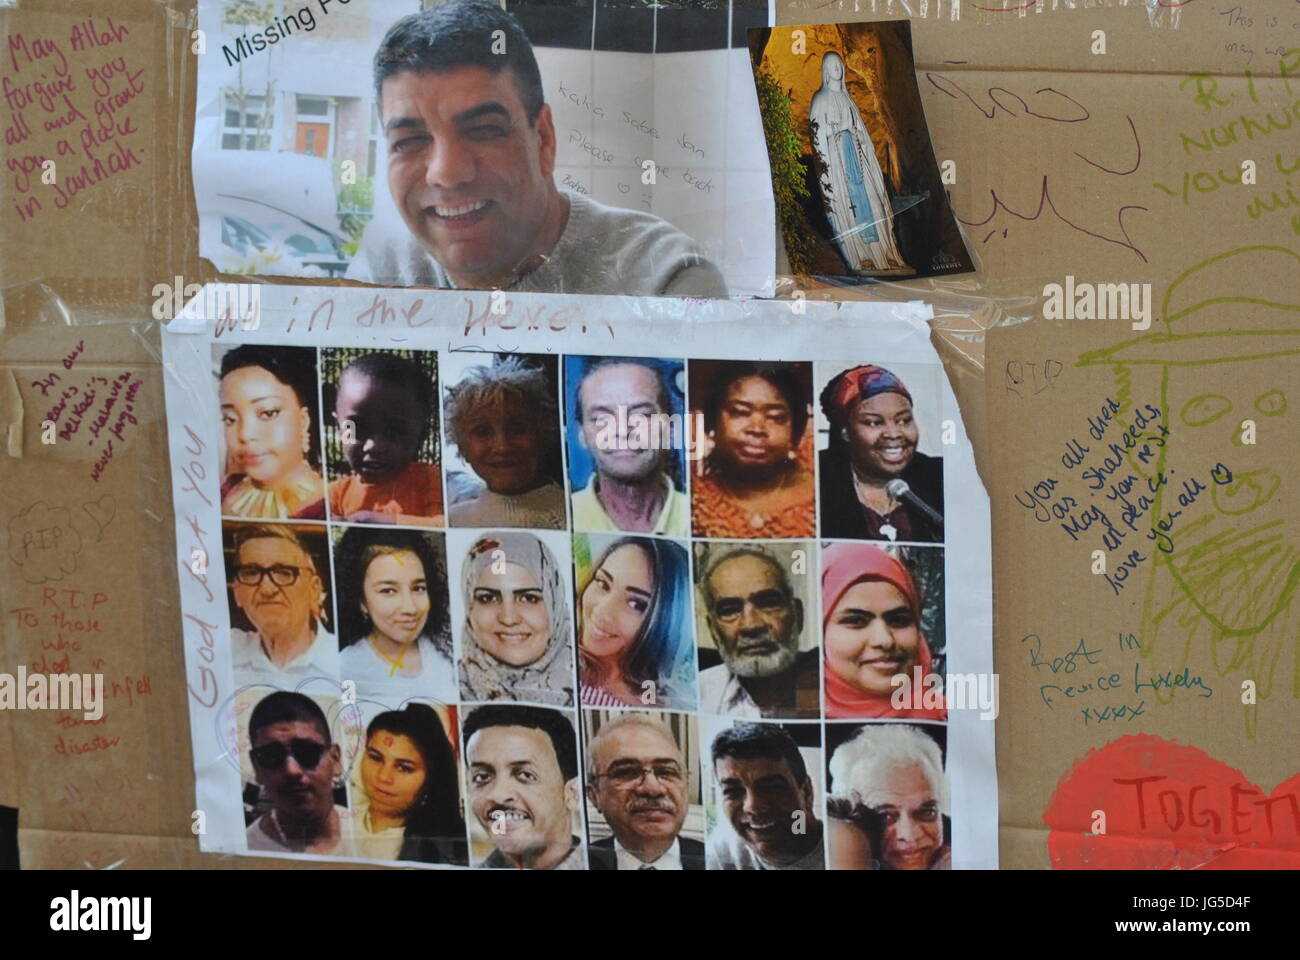 London, UK. 17th June, 2017. The Missing Posters from the Grenfell Tower Fire Disaster,. Contributor: Katherine - Stock Image